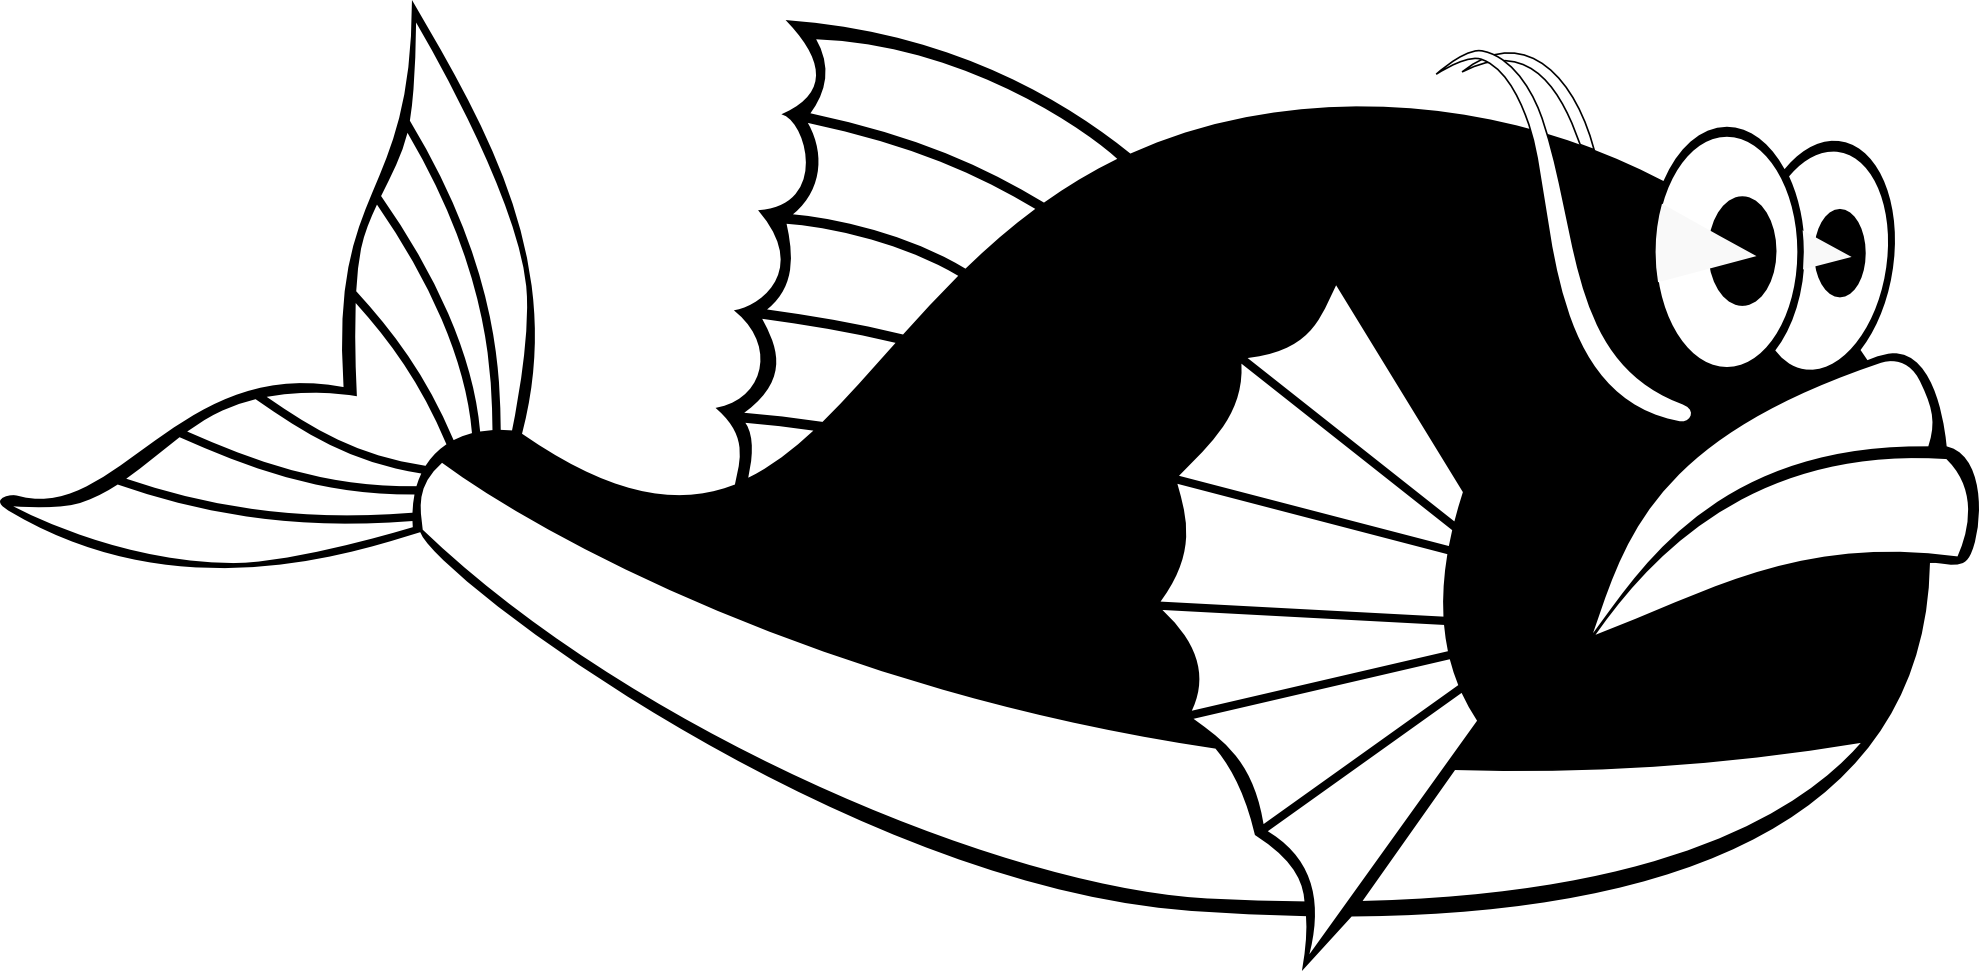 Line Drawing Graphics : Black and white fish drawings clipart best